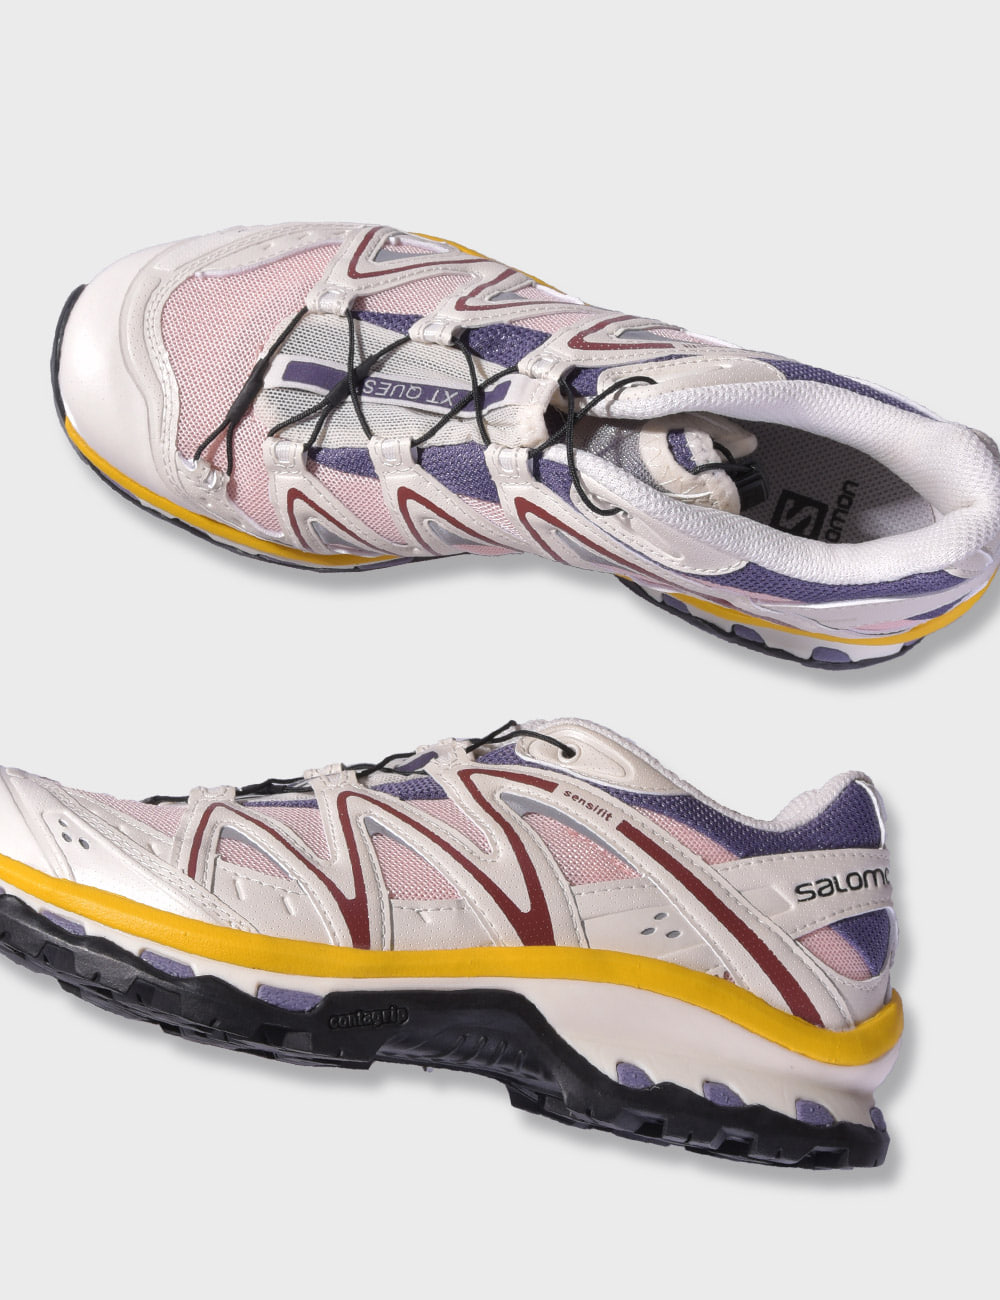 salomon : XT-QUEST (CADET/TROPICAL PEACH/VANILLA ICE)